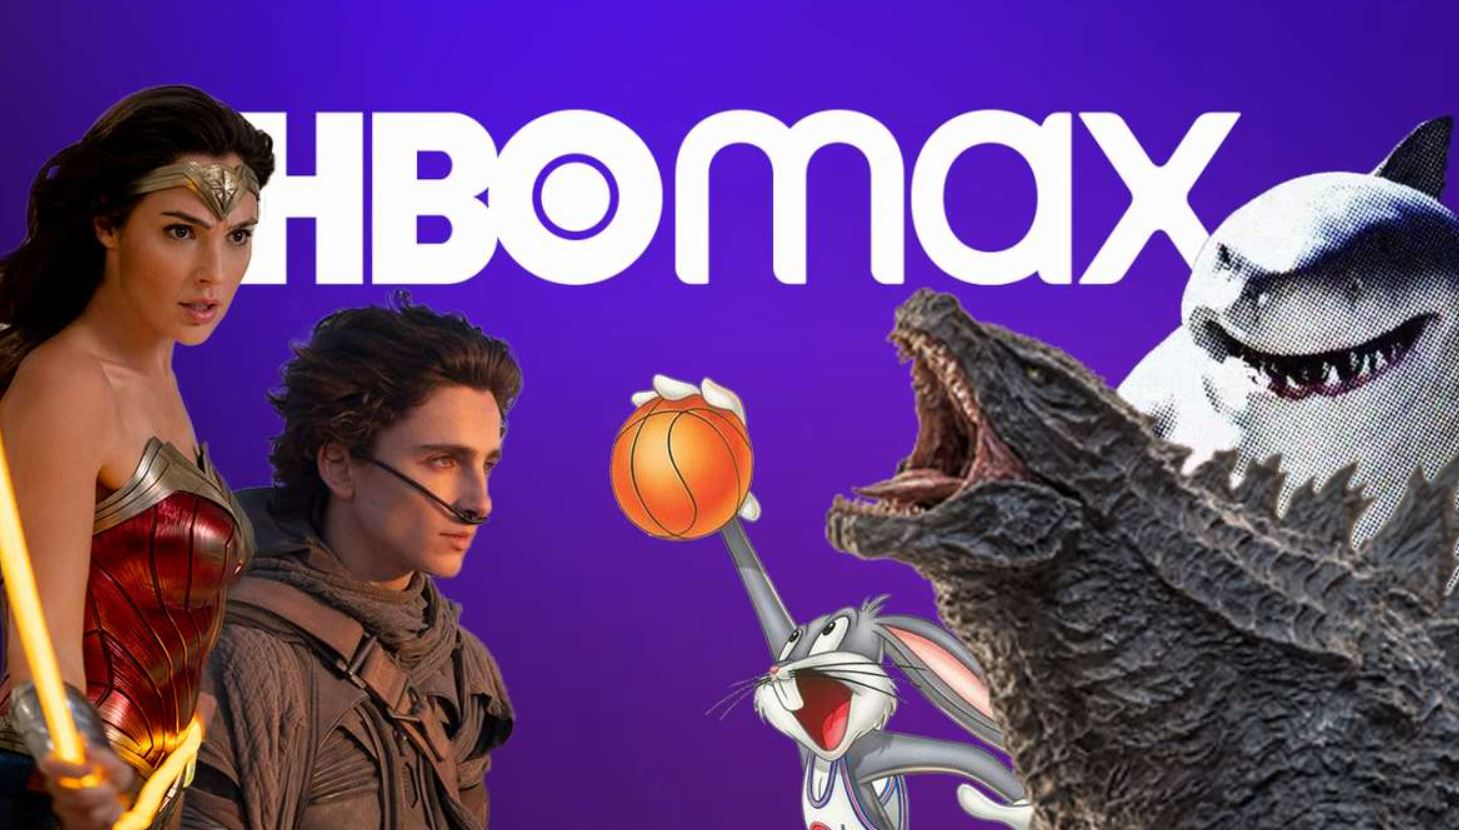 HBO Max TV Shows and Movies